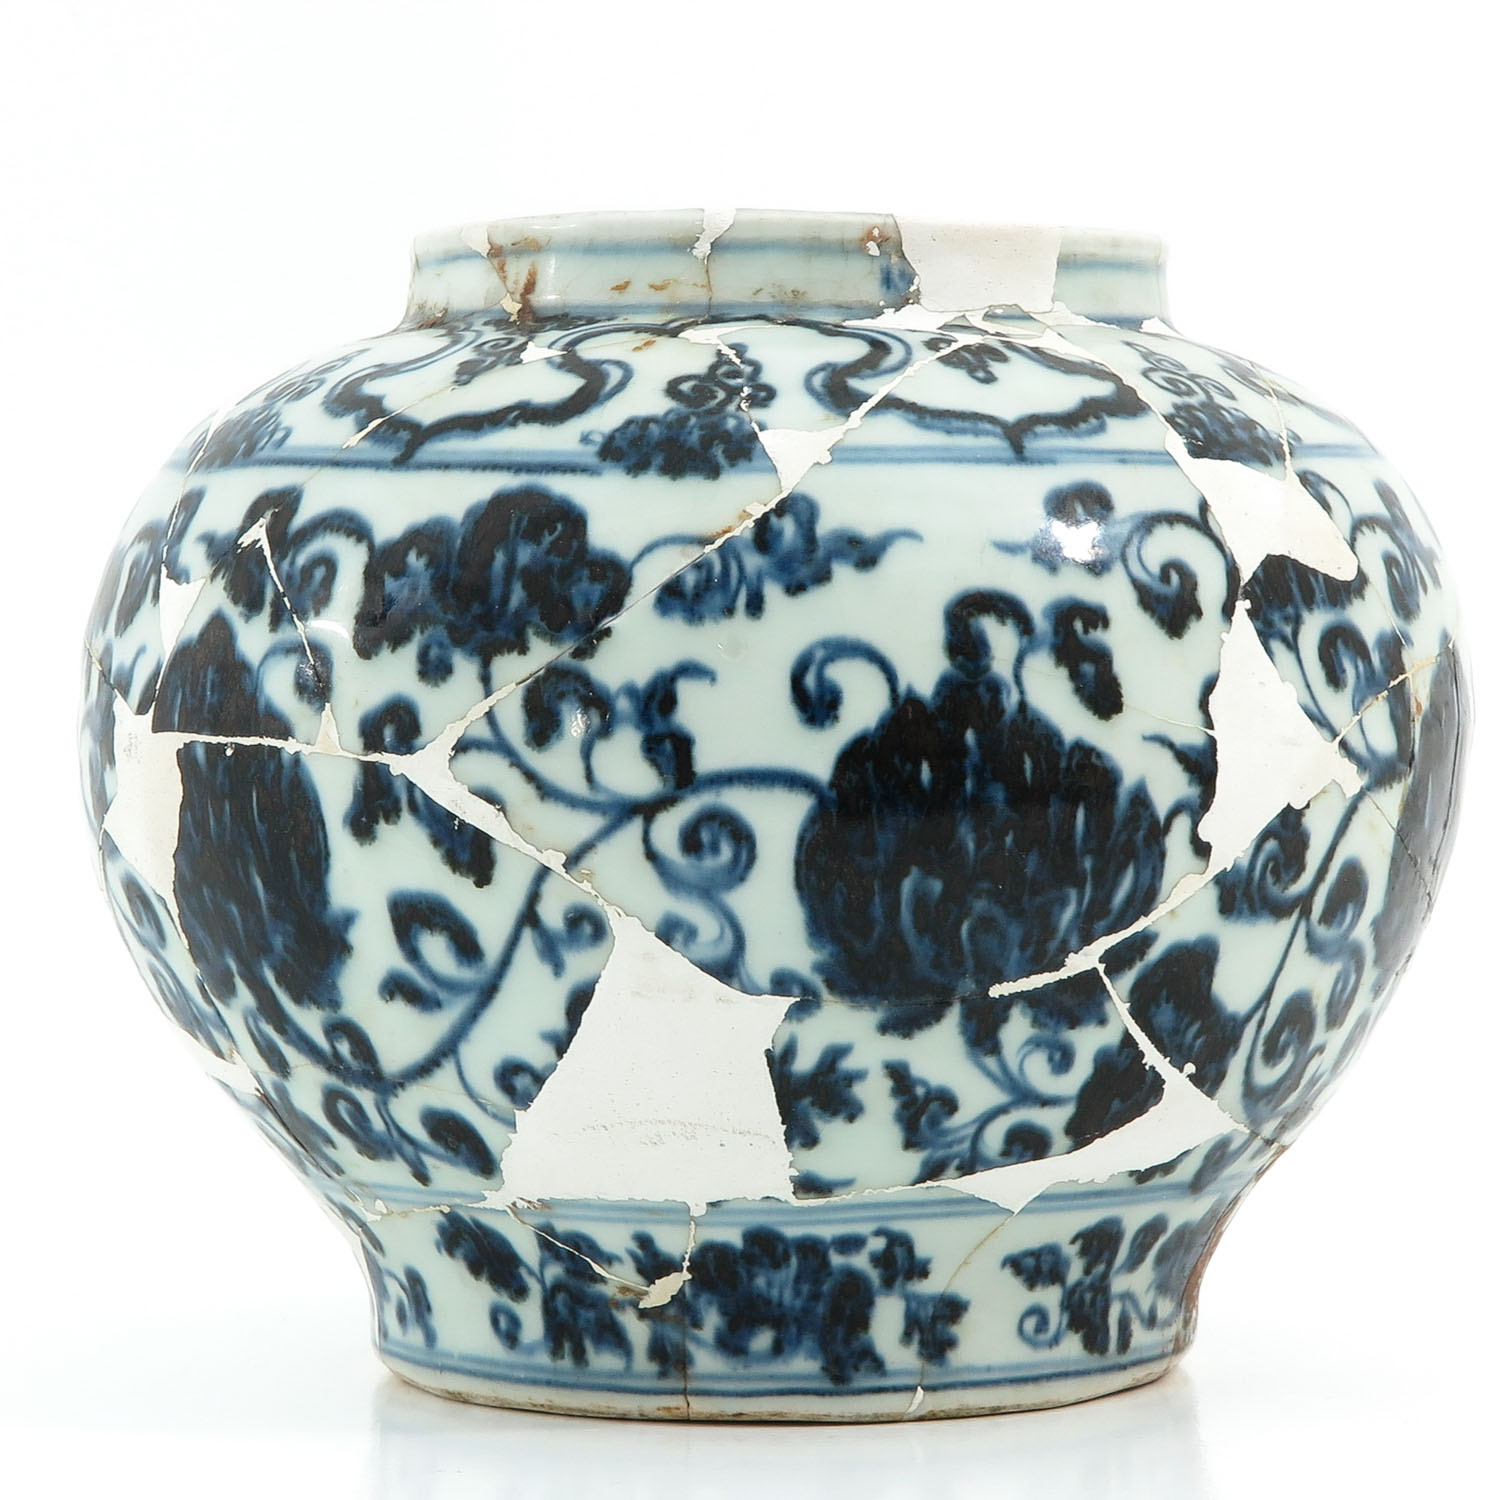 A Blue and White Vase - Image 2 of 10